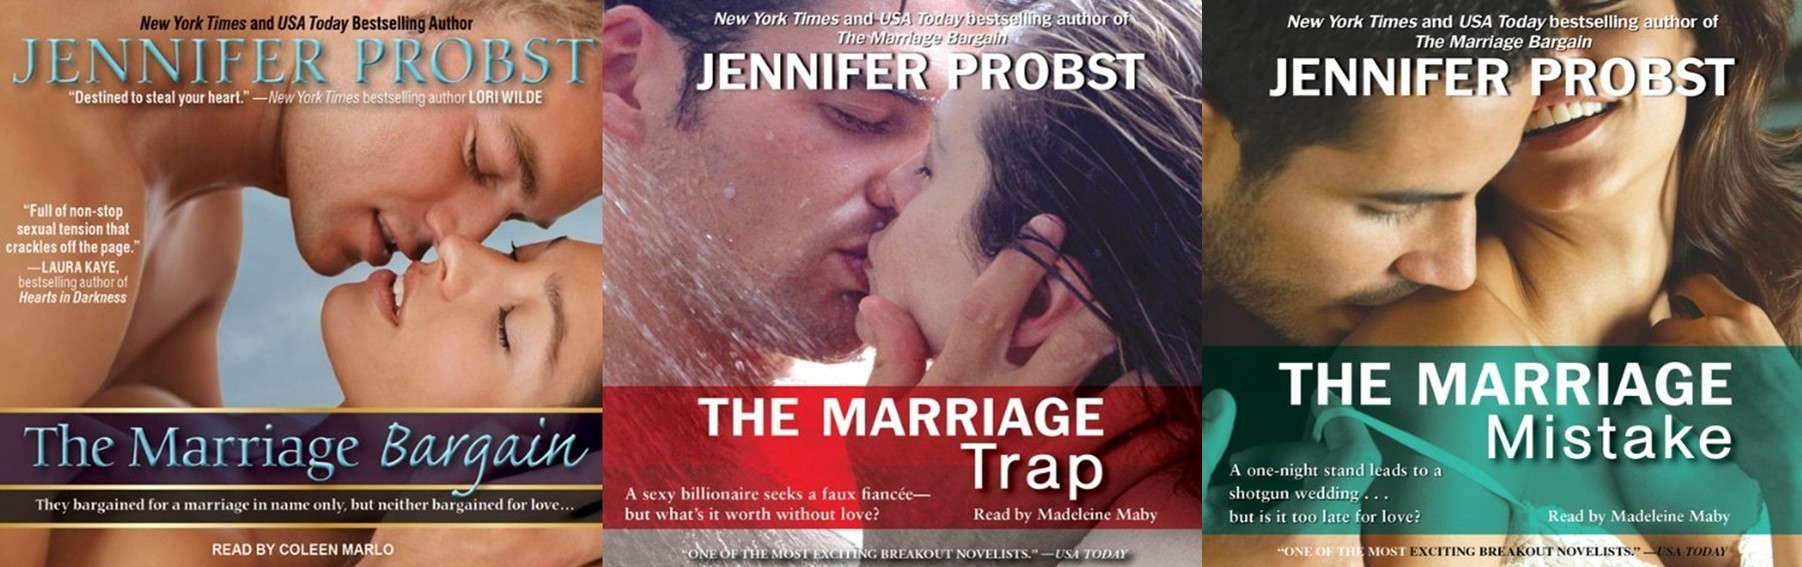 Trap epub the marriage download